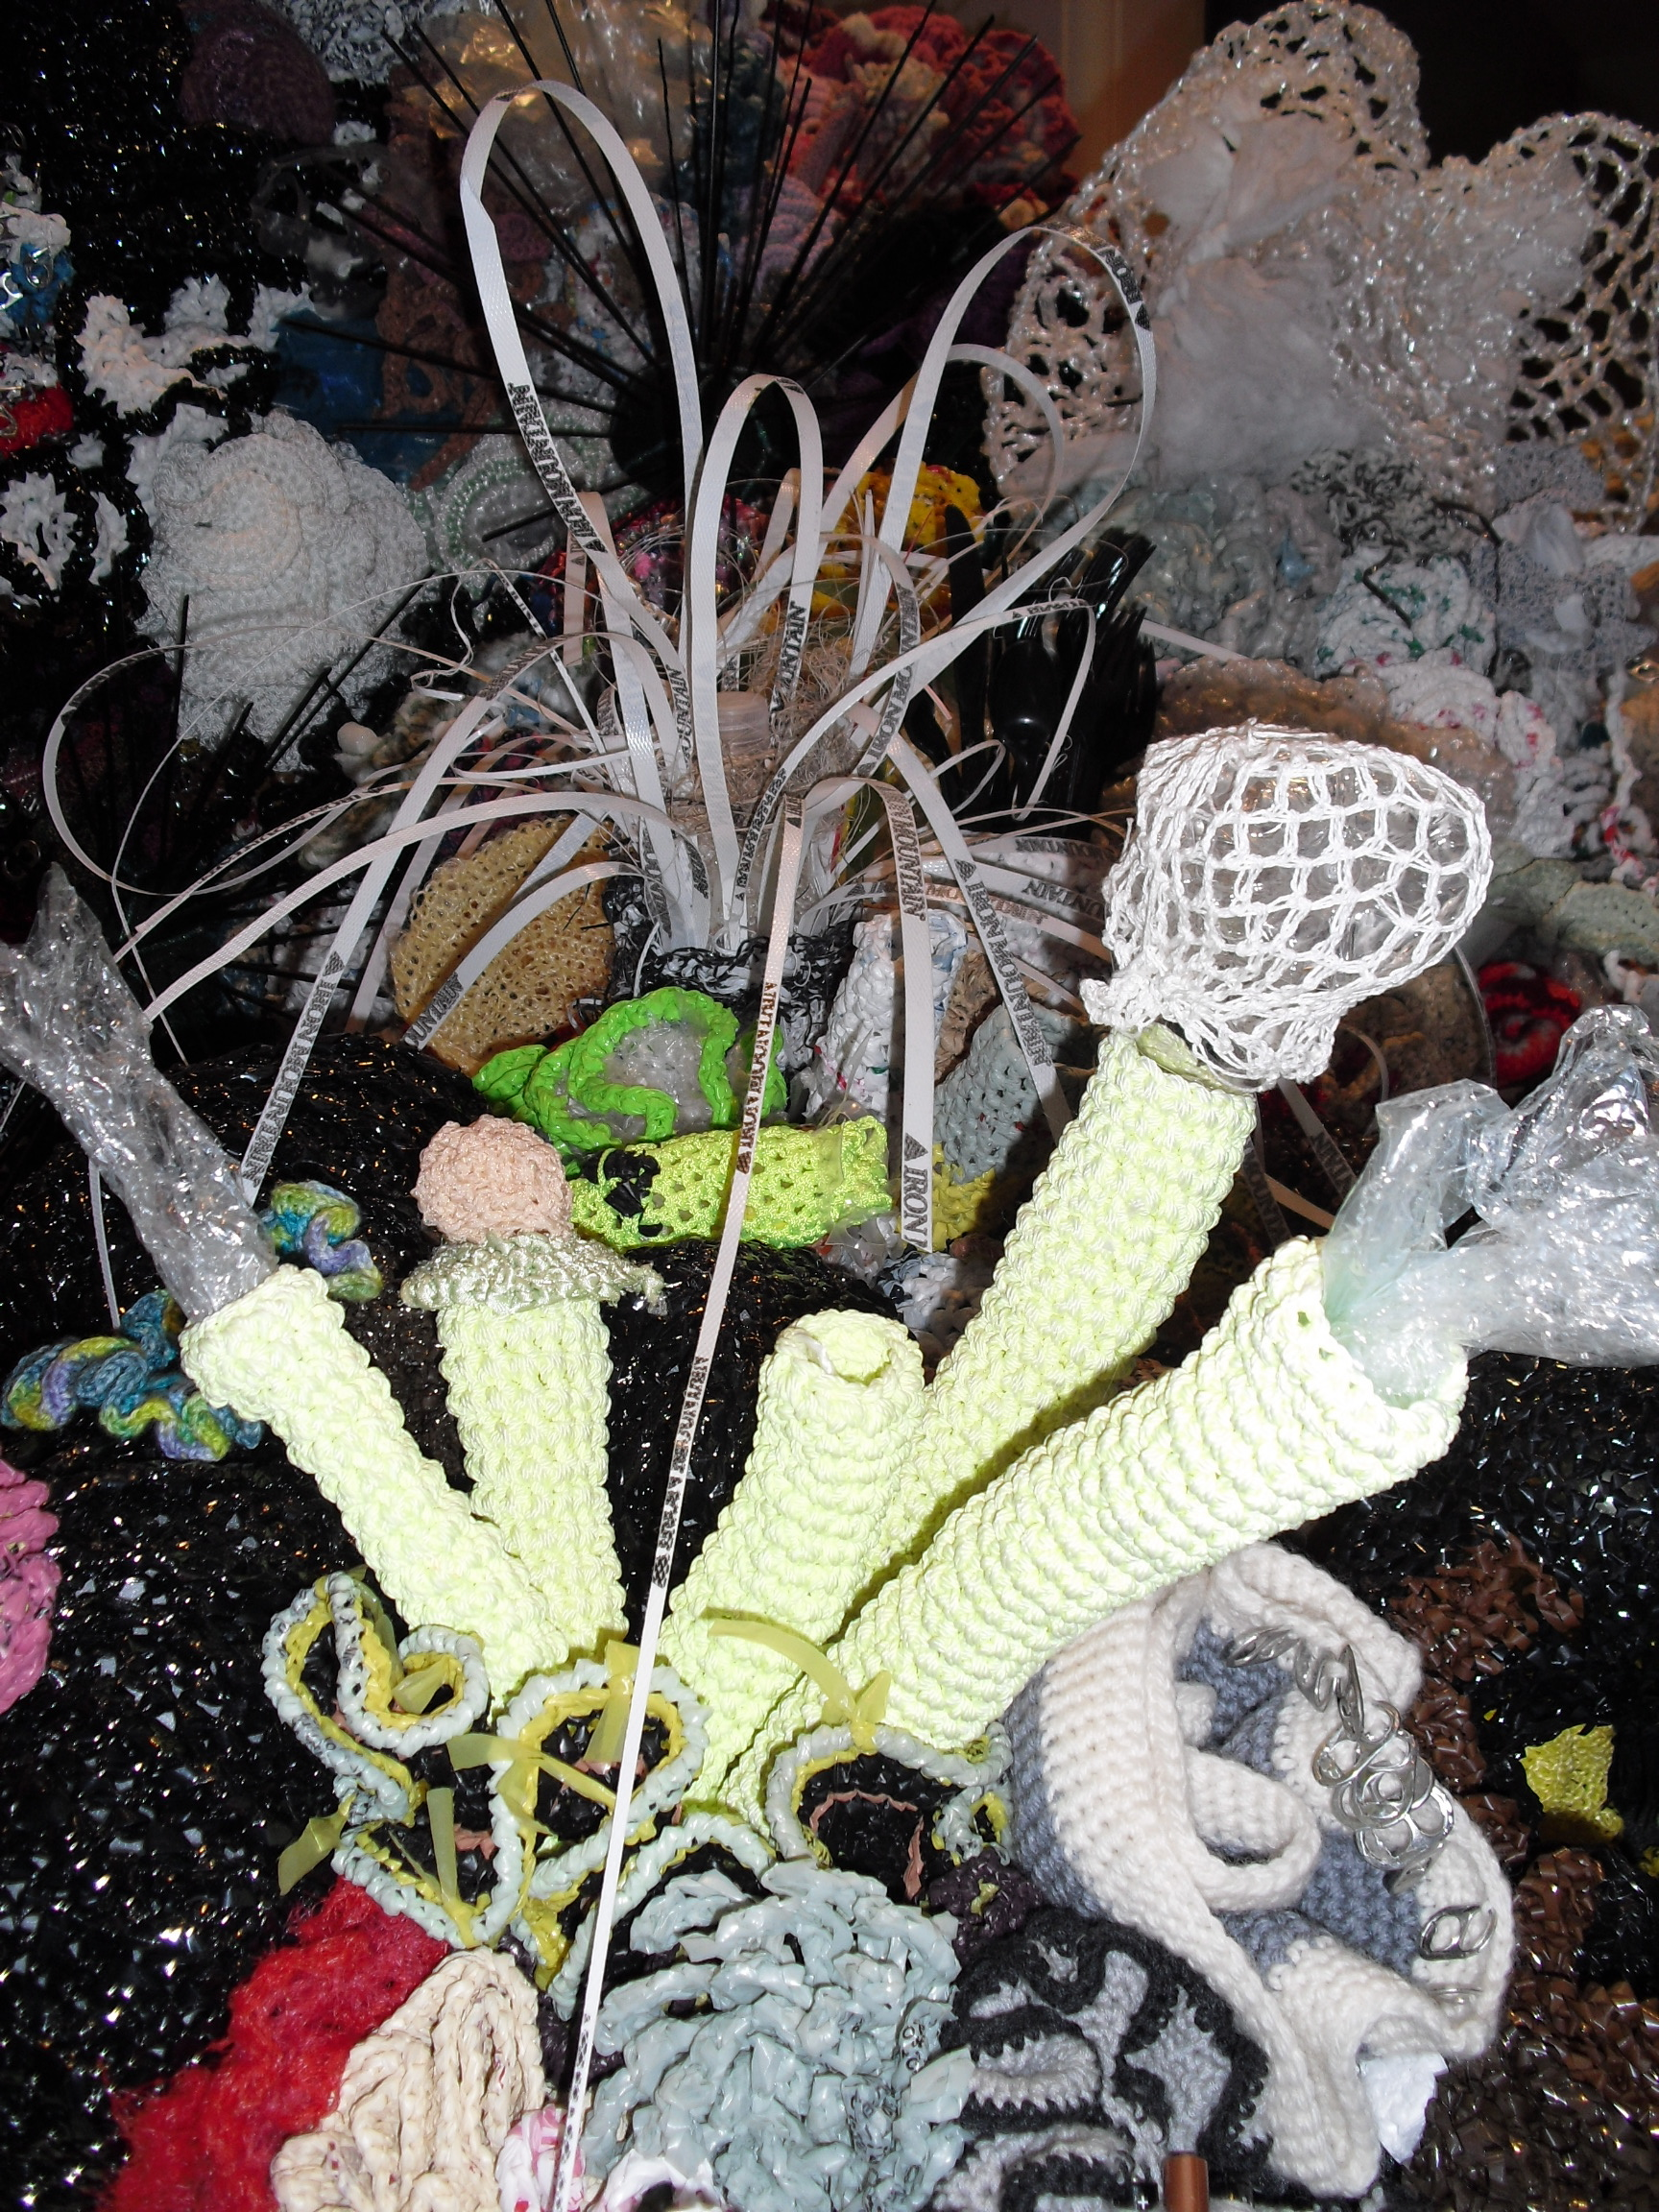 Toxic coral reef The Hyperbolic Crochet Coral Reef exhibit